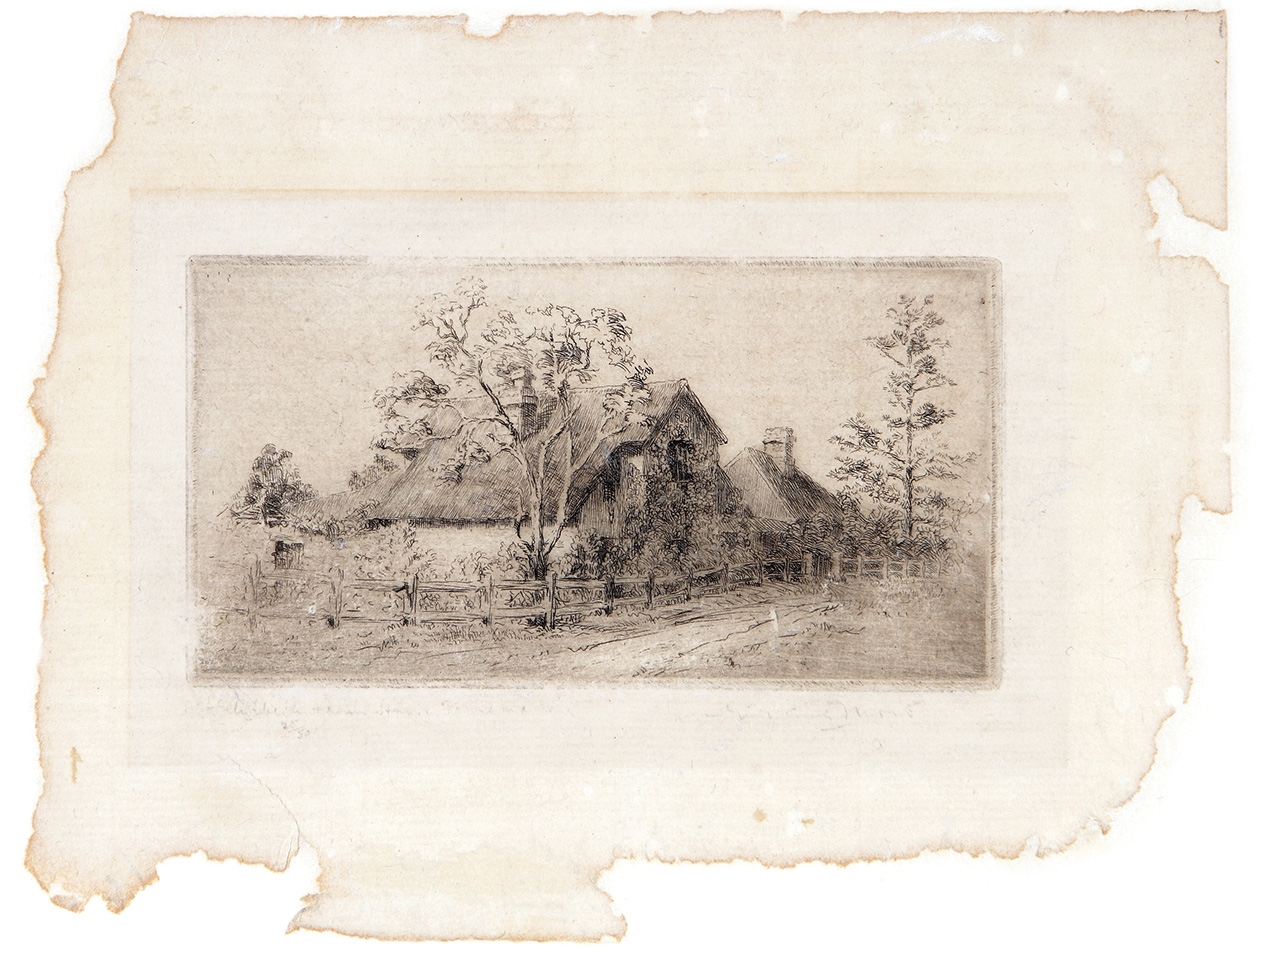 Fragment of paper with print on it.